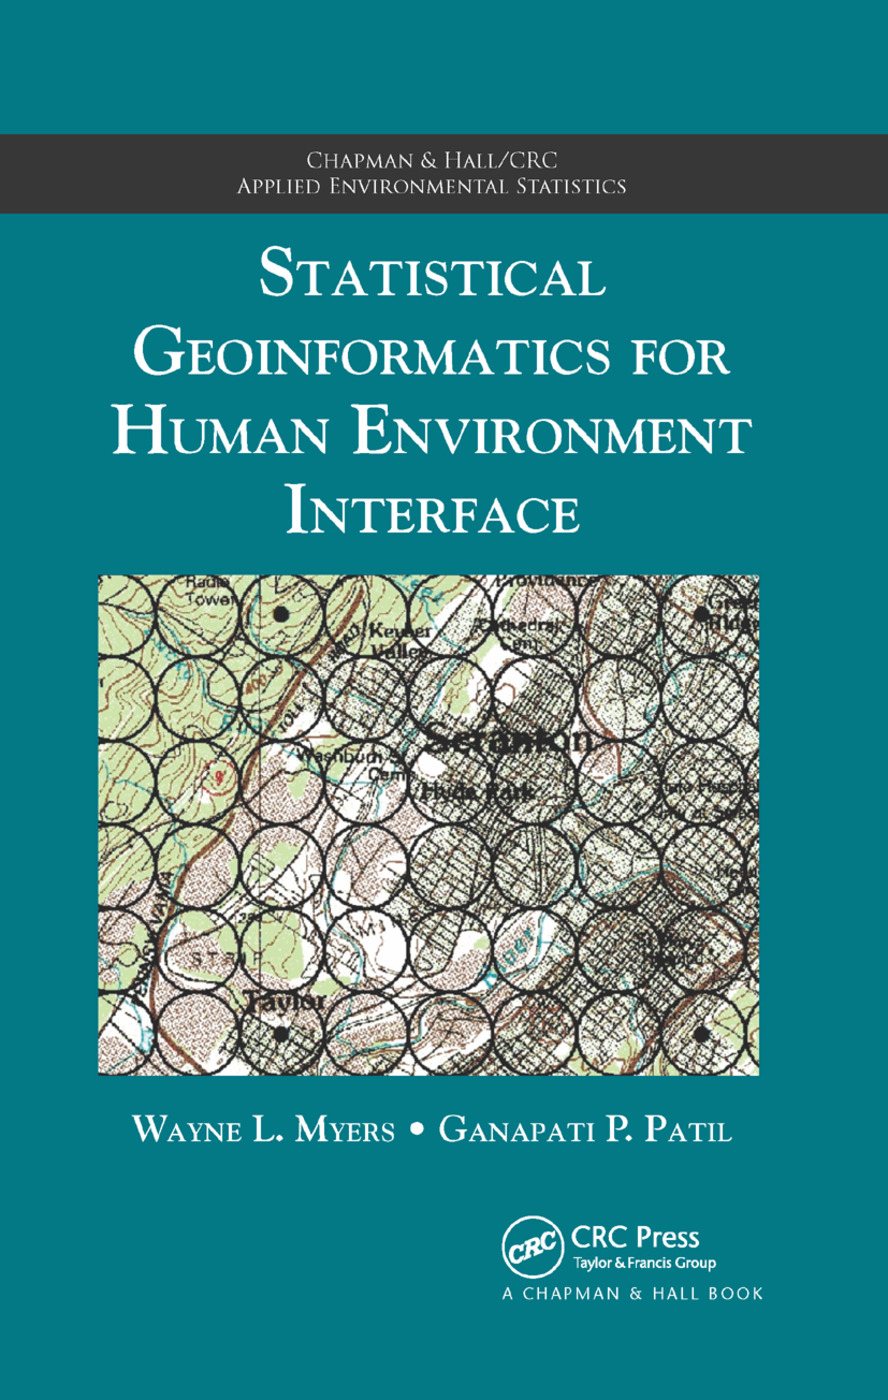 Statistical Geoinformatics for Human Environment Interface: 1st Edition (Paperback) book cover